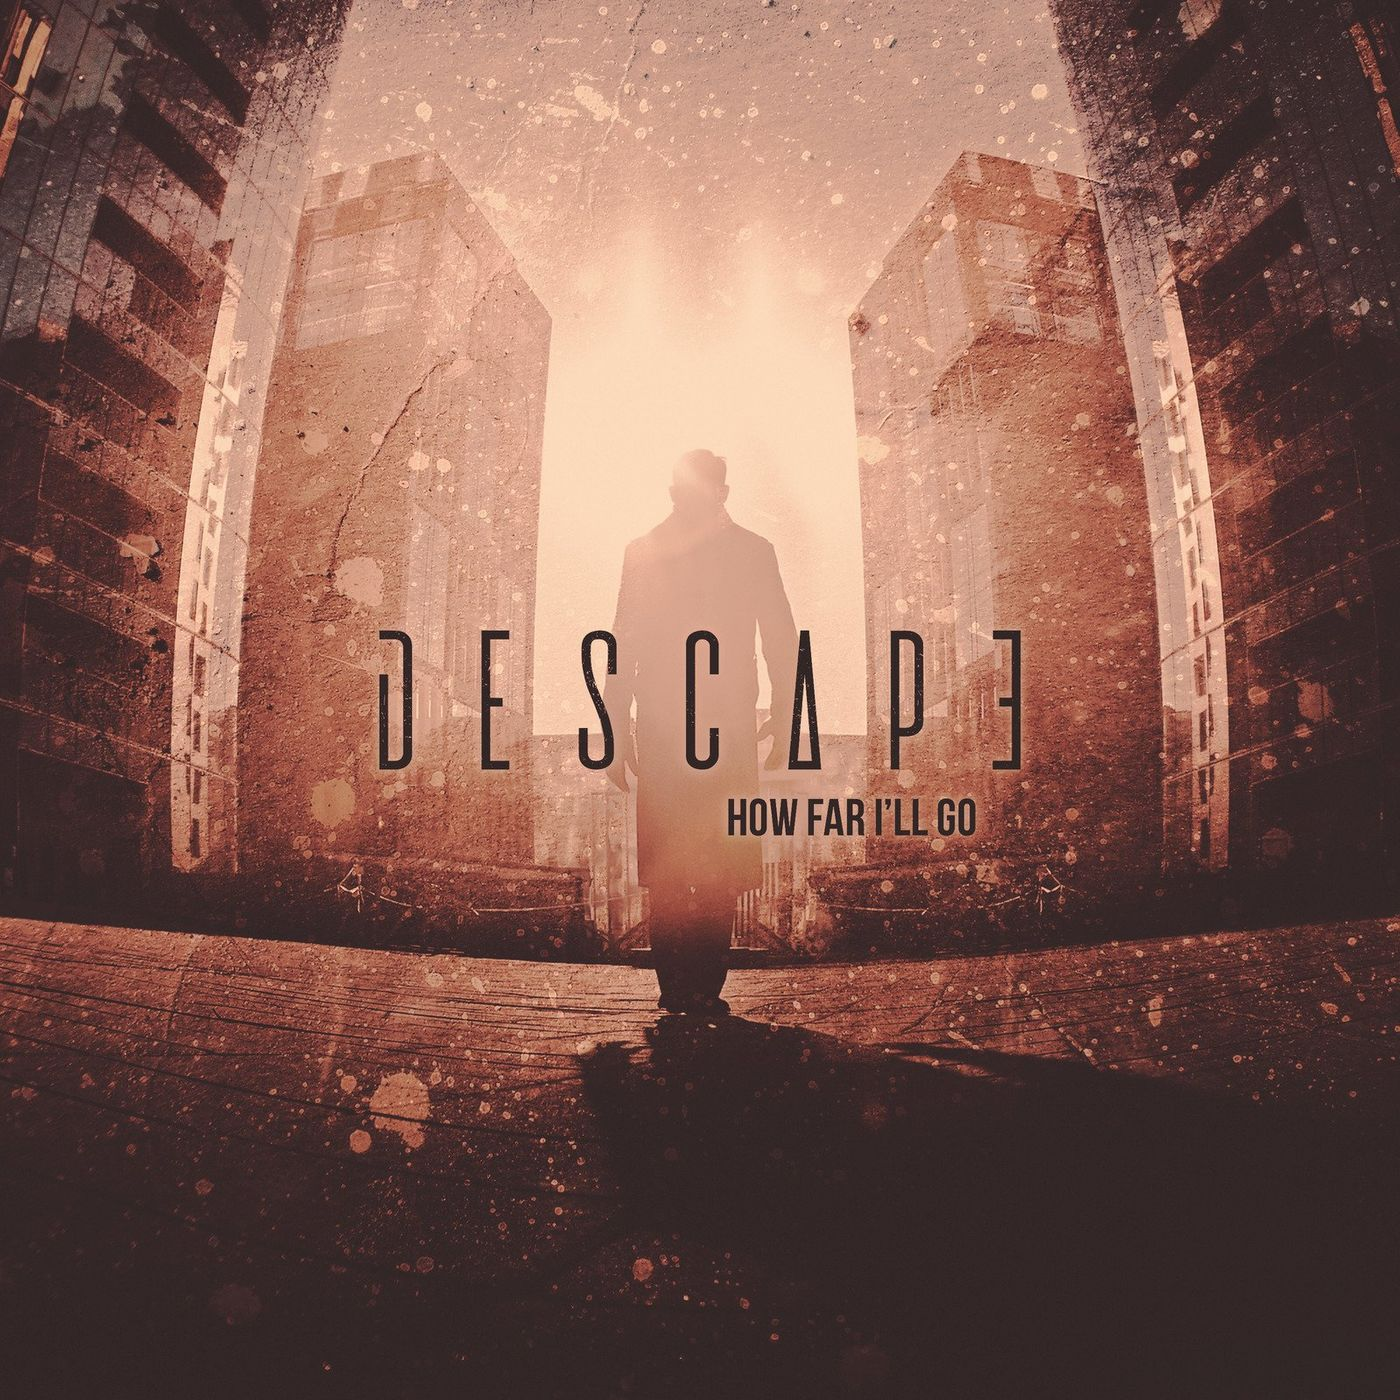 Descape - How Far I'll Go [single] (2021)